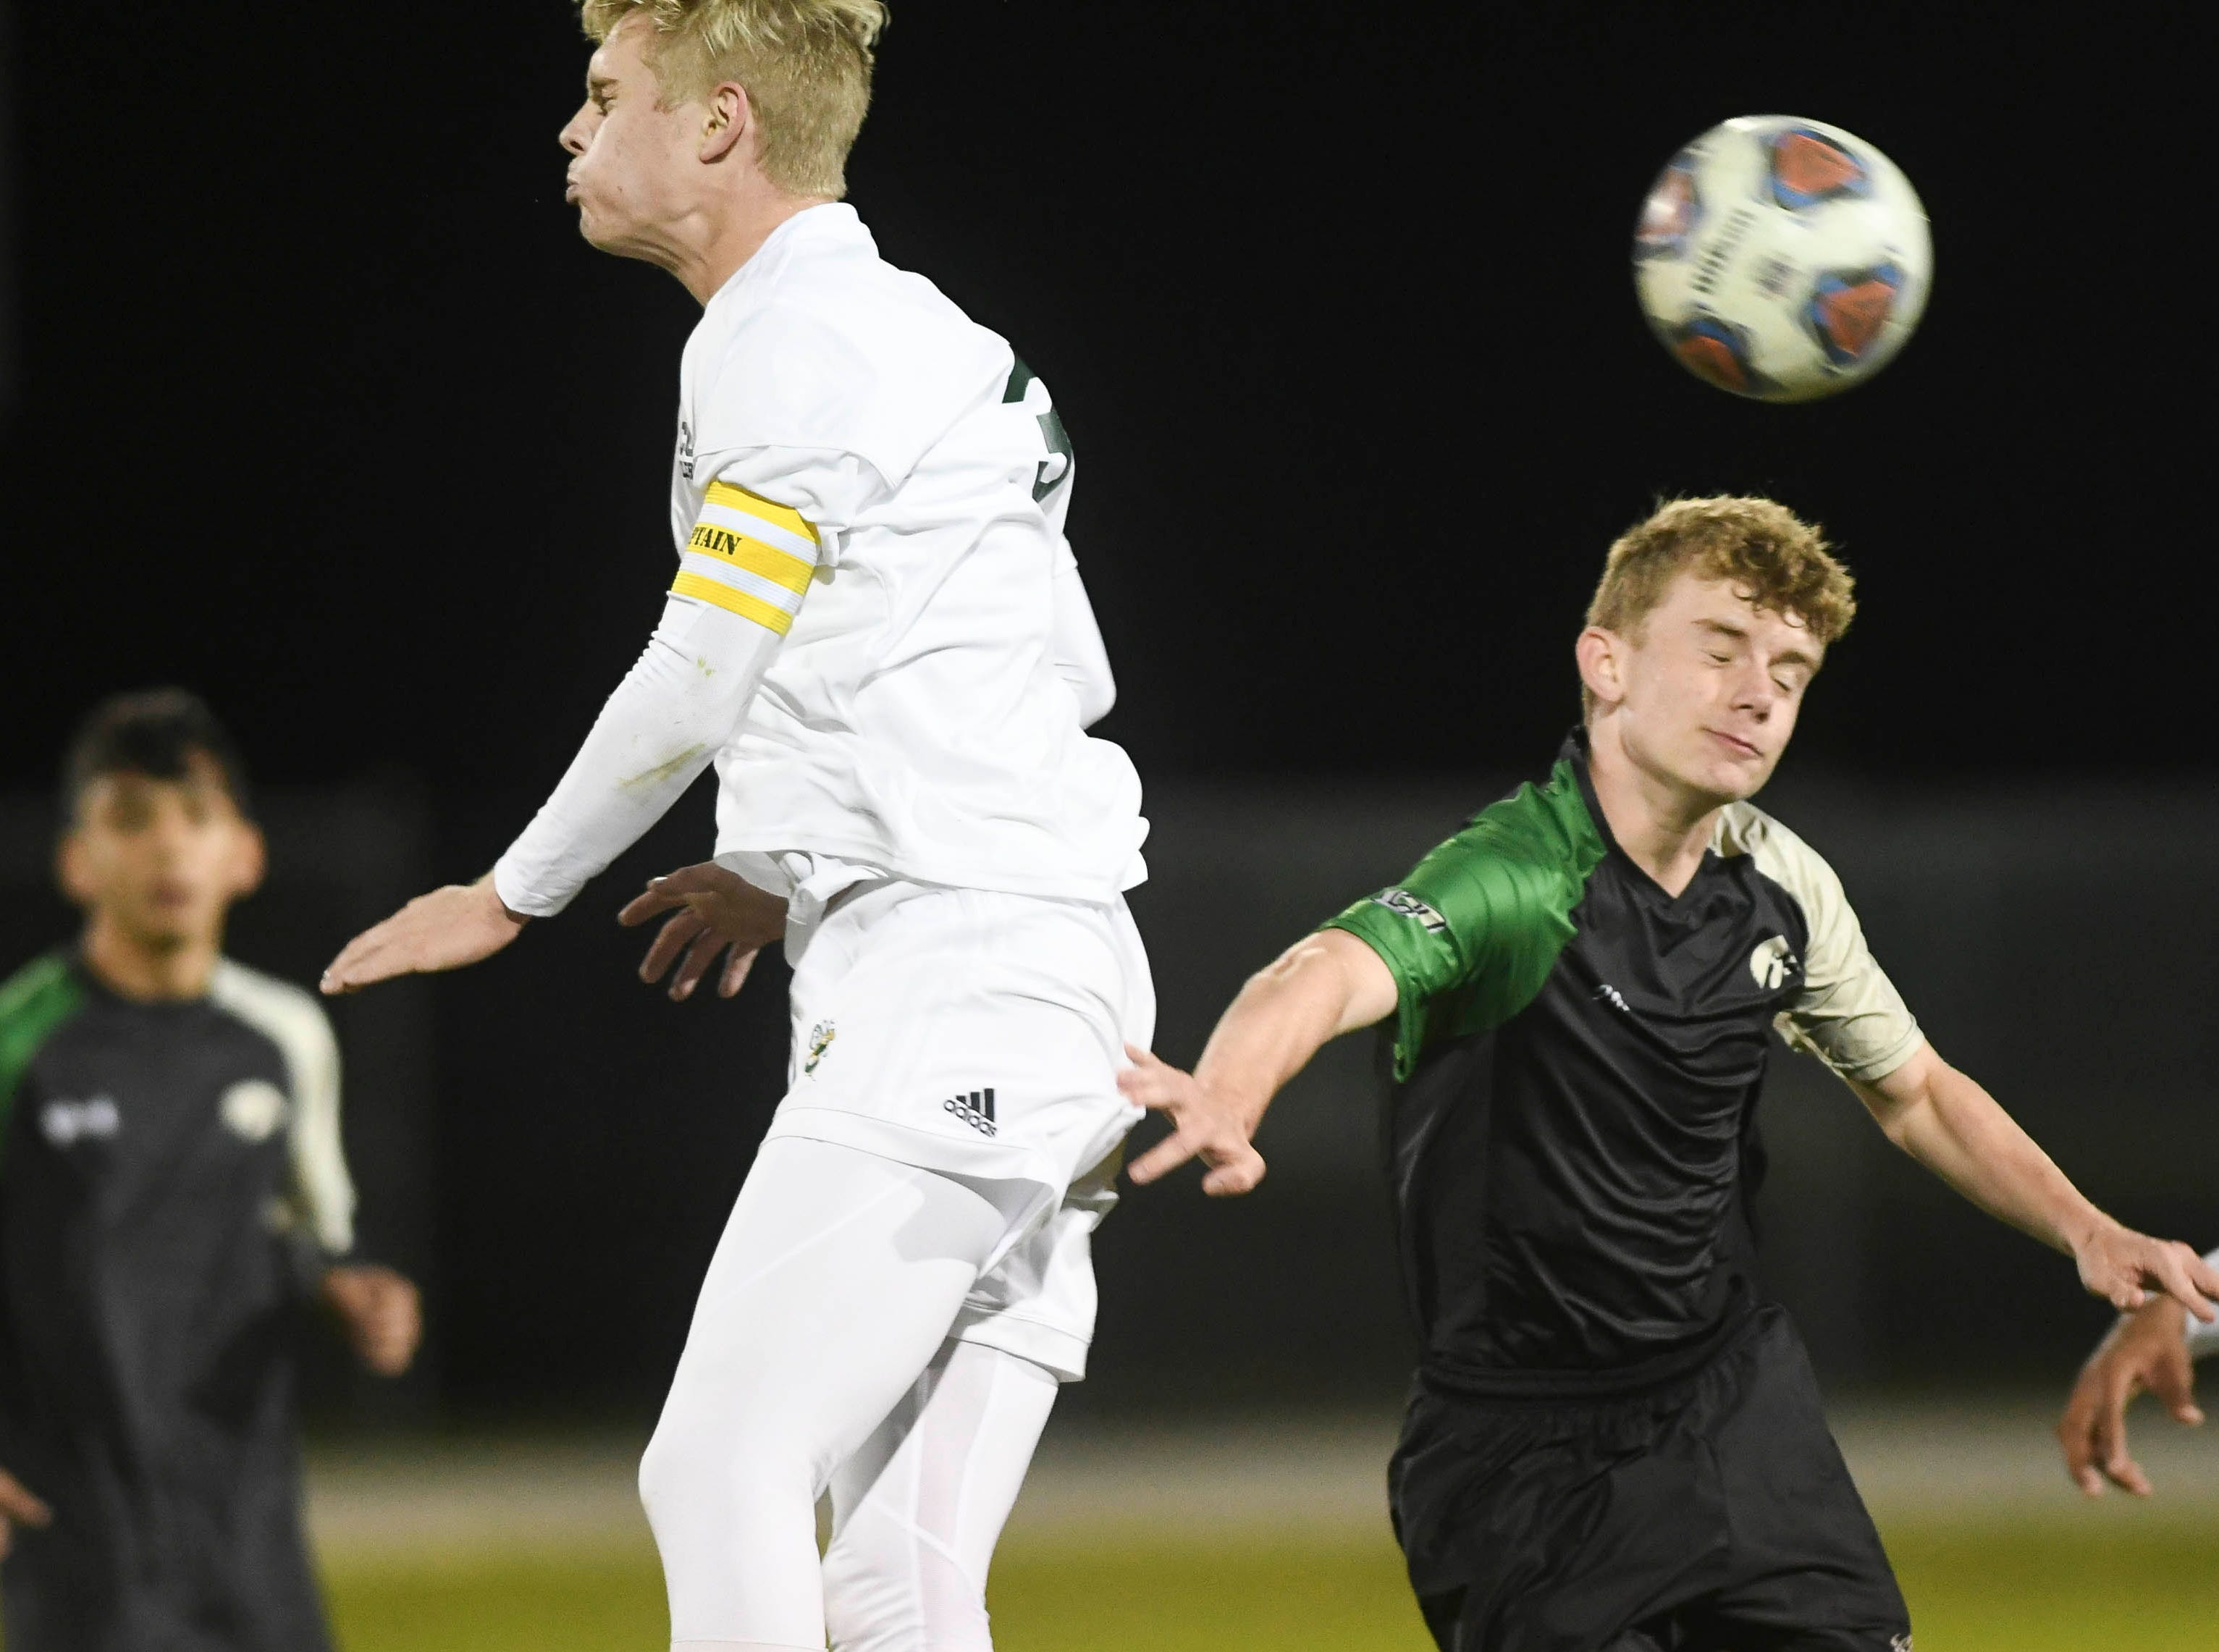 Tyler Keller of Melbourne Central Catholic heads the ball away from Zachary Nielsen of VIera during Friday's game in Viera.